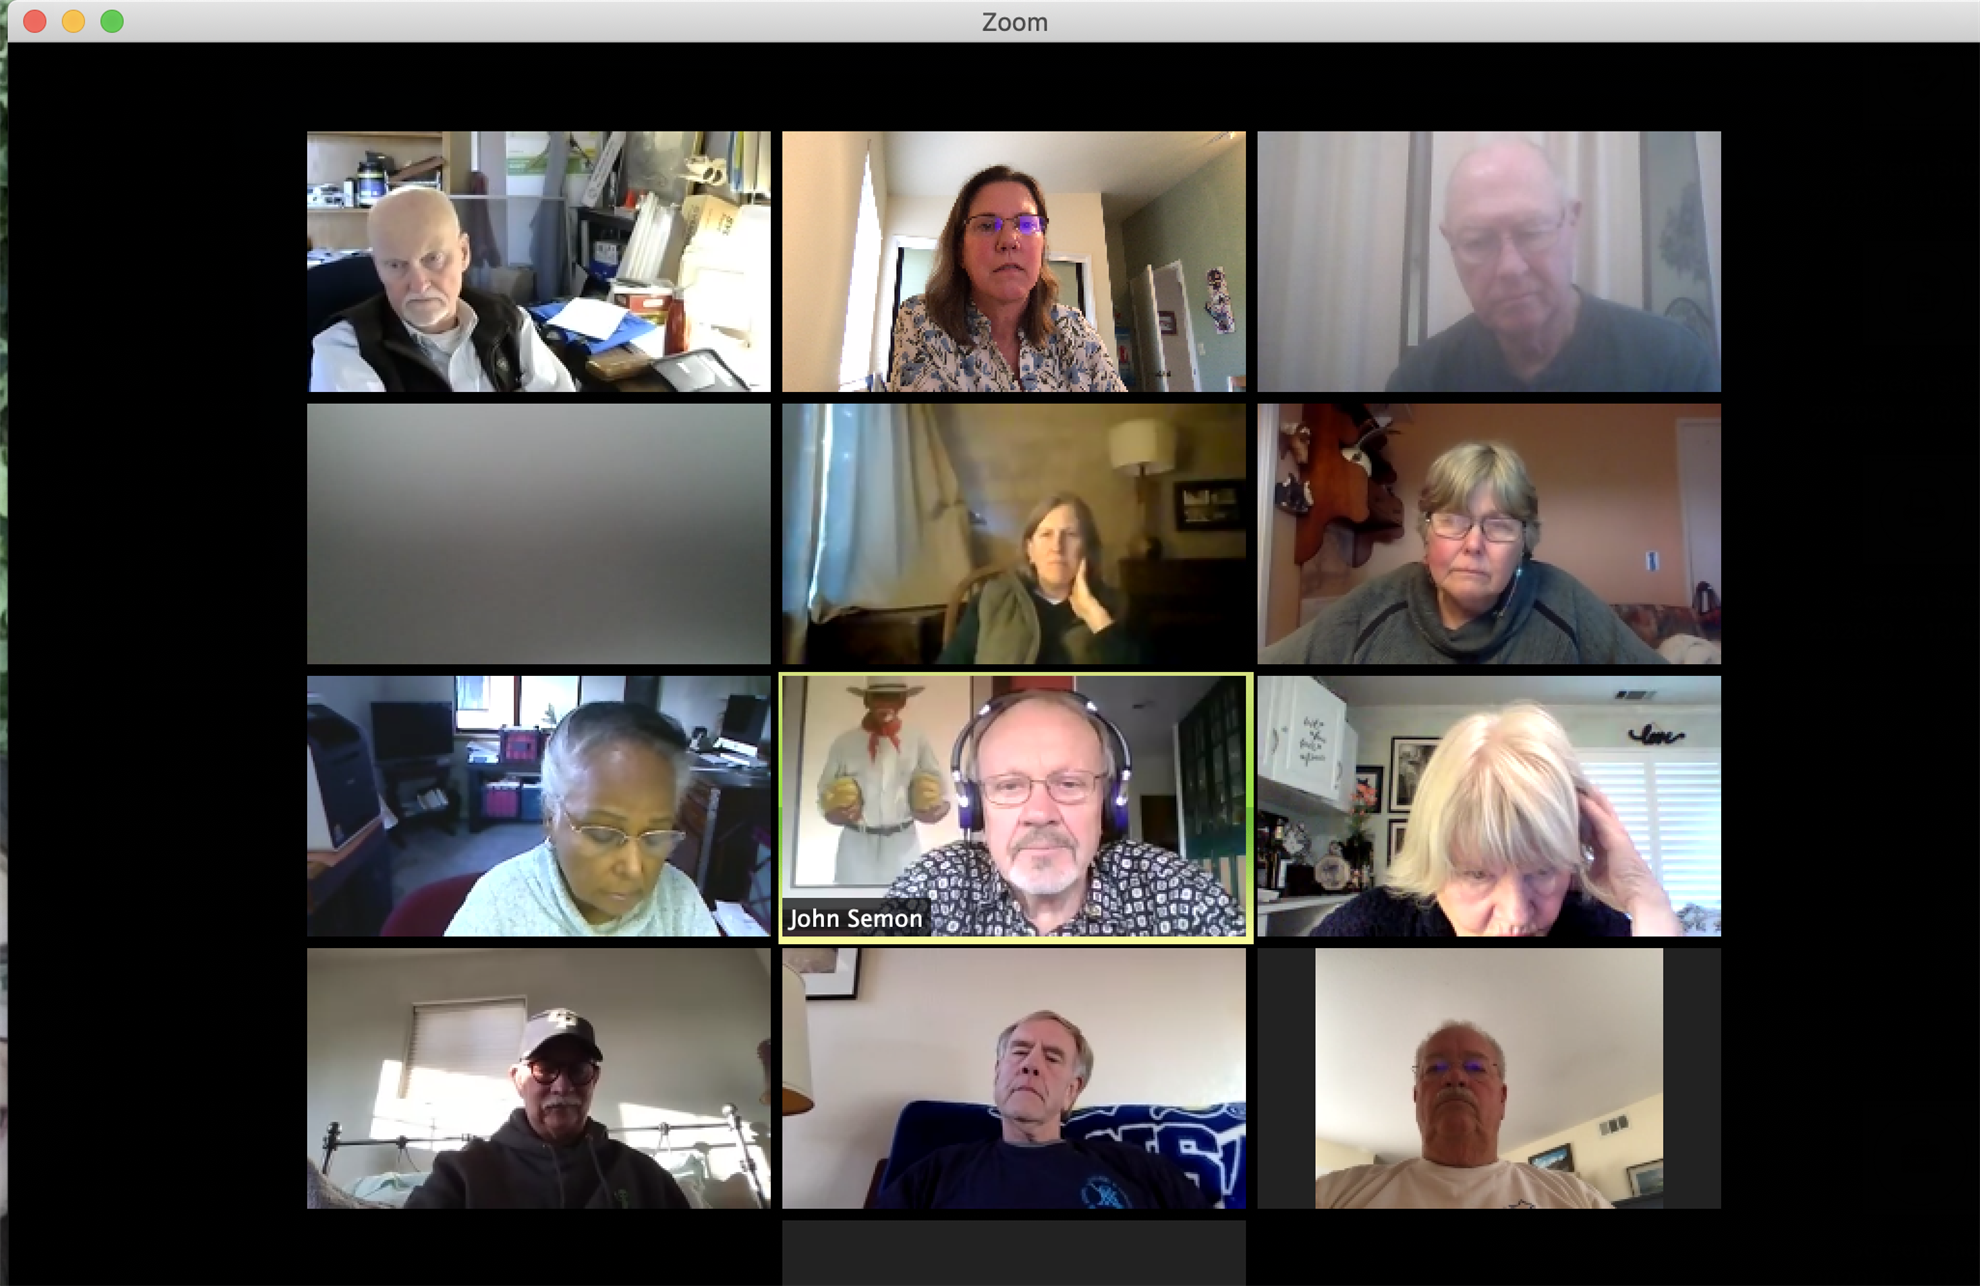 Zoom meeting due to Covid-19